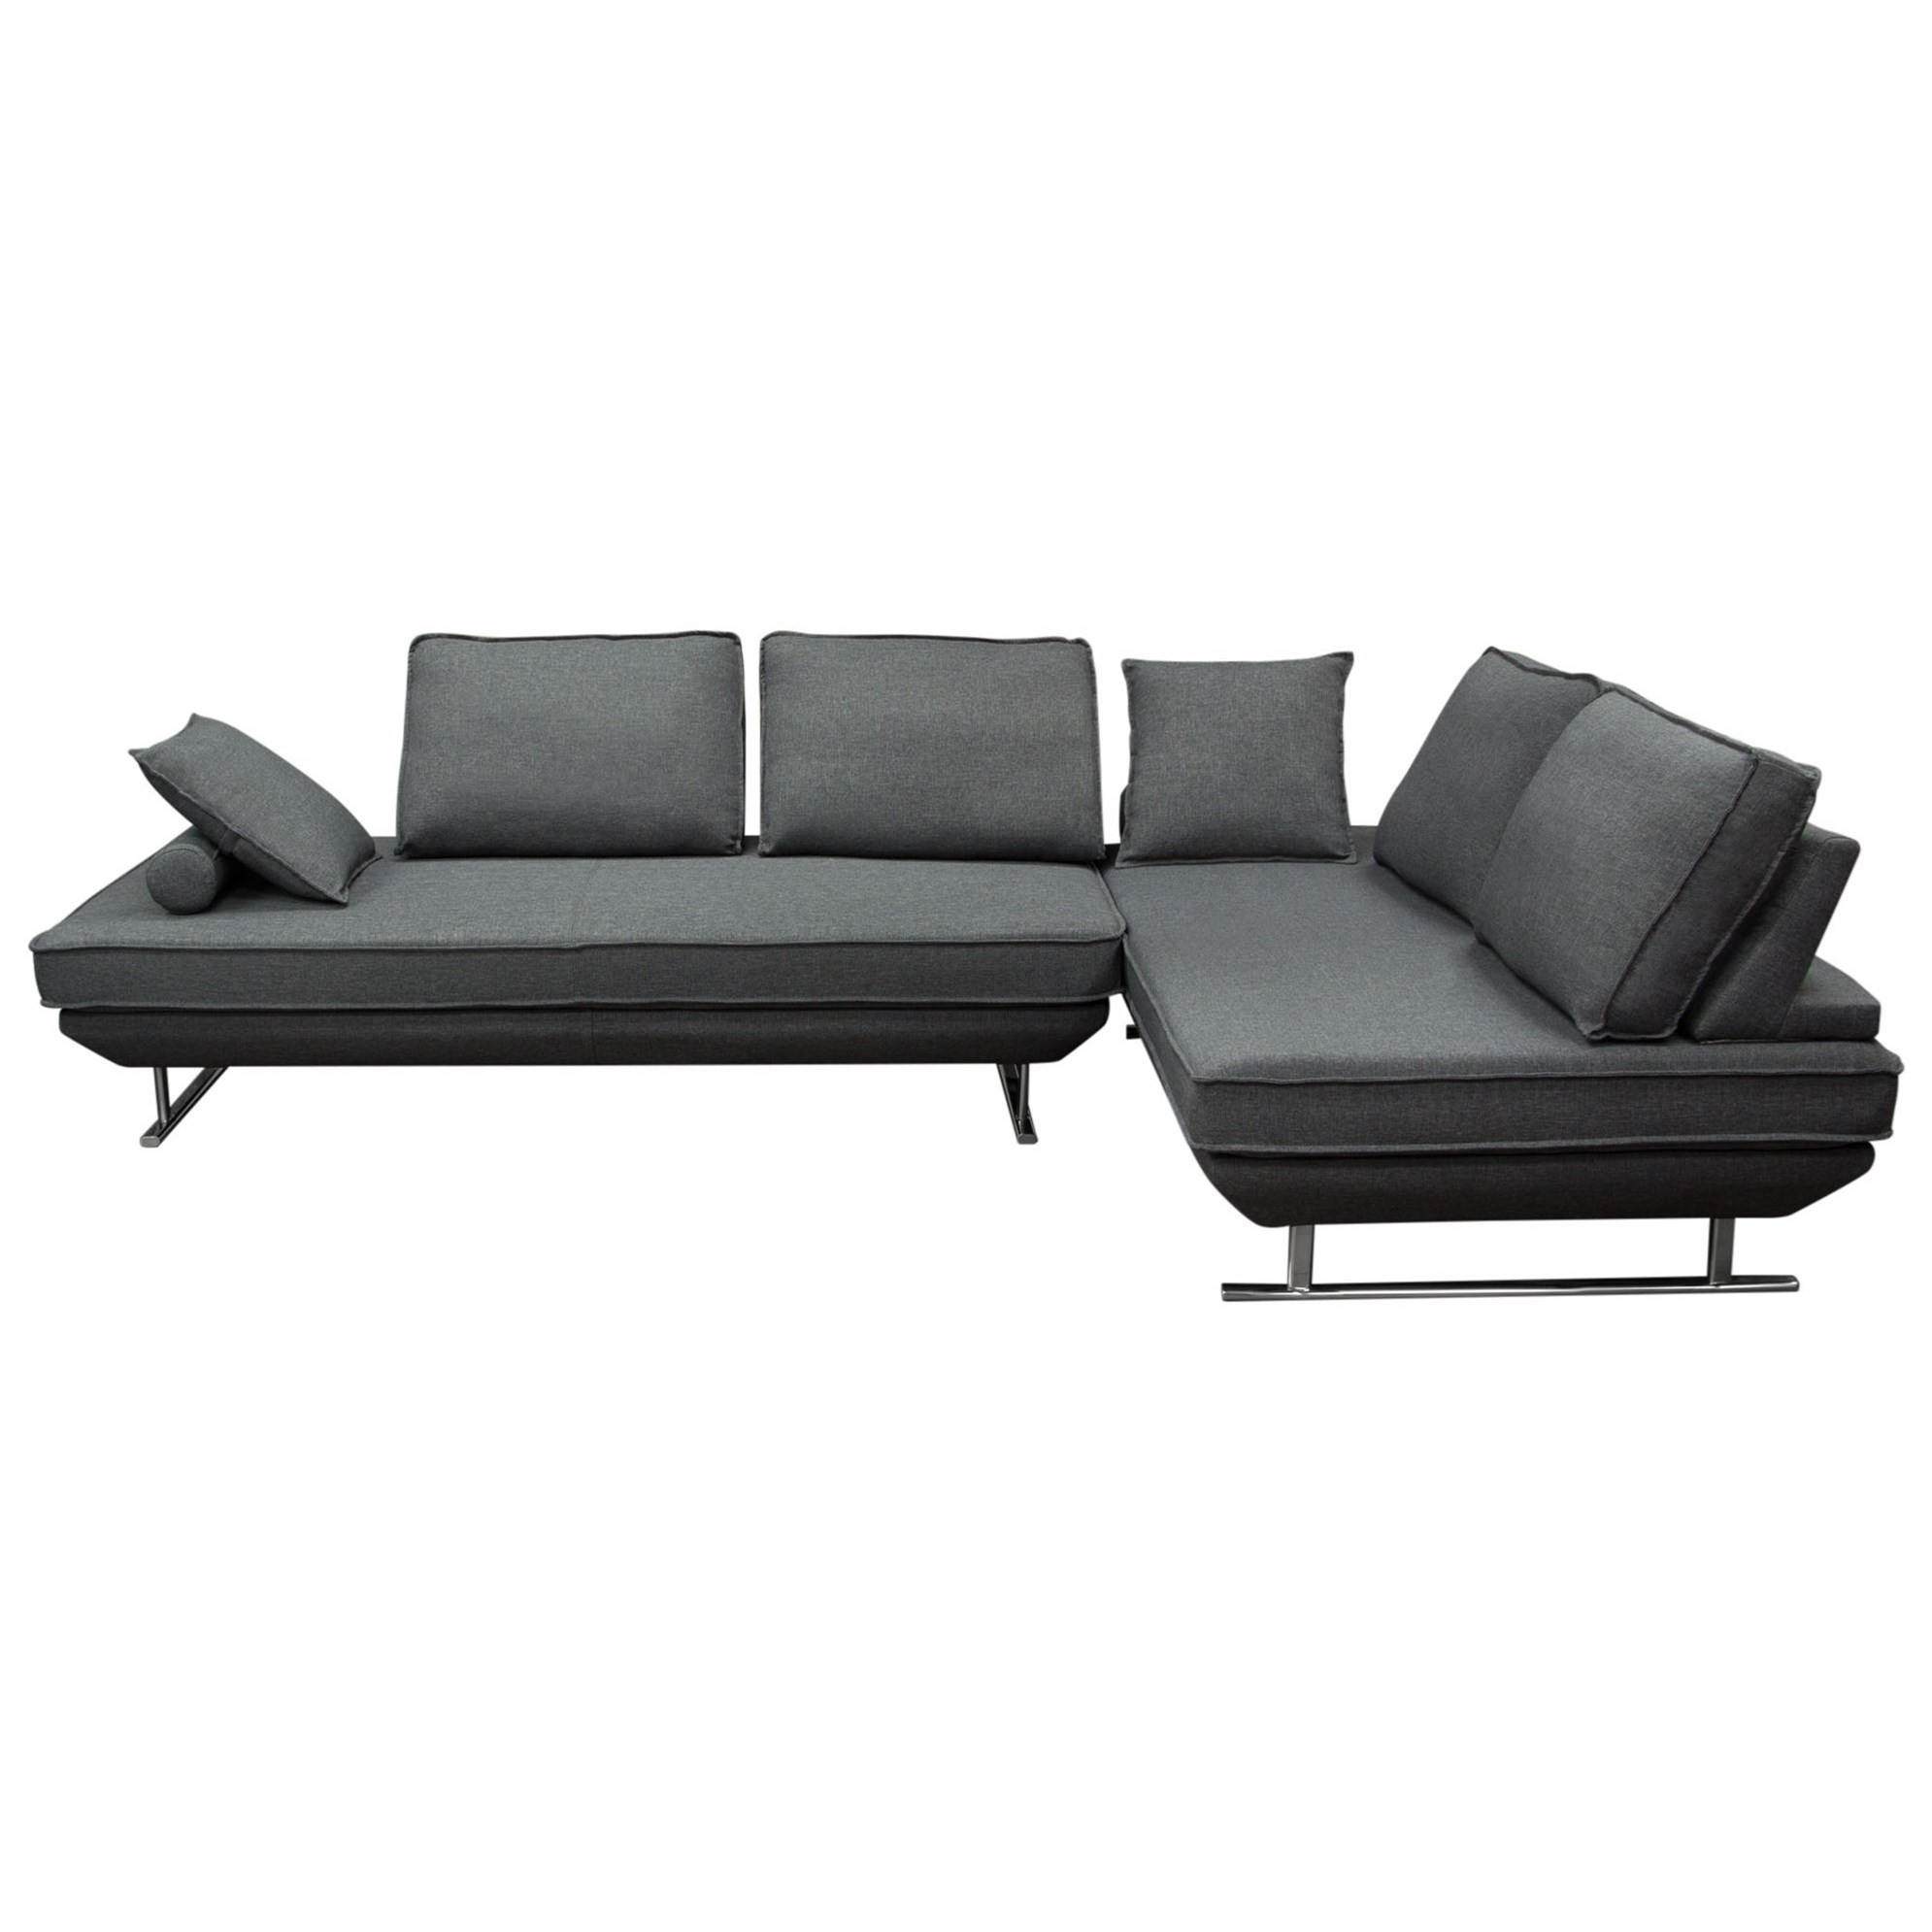 Dolce Lounger Sectional by Diamond Sofa at HomeWorld Furniture